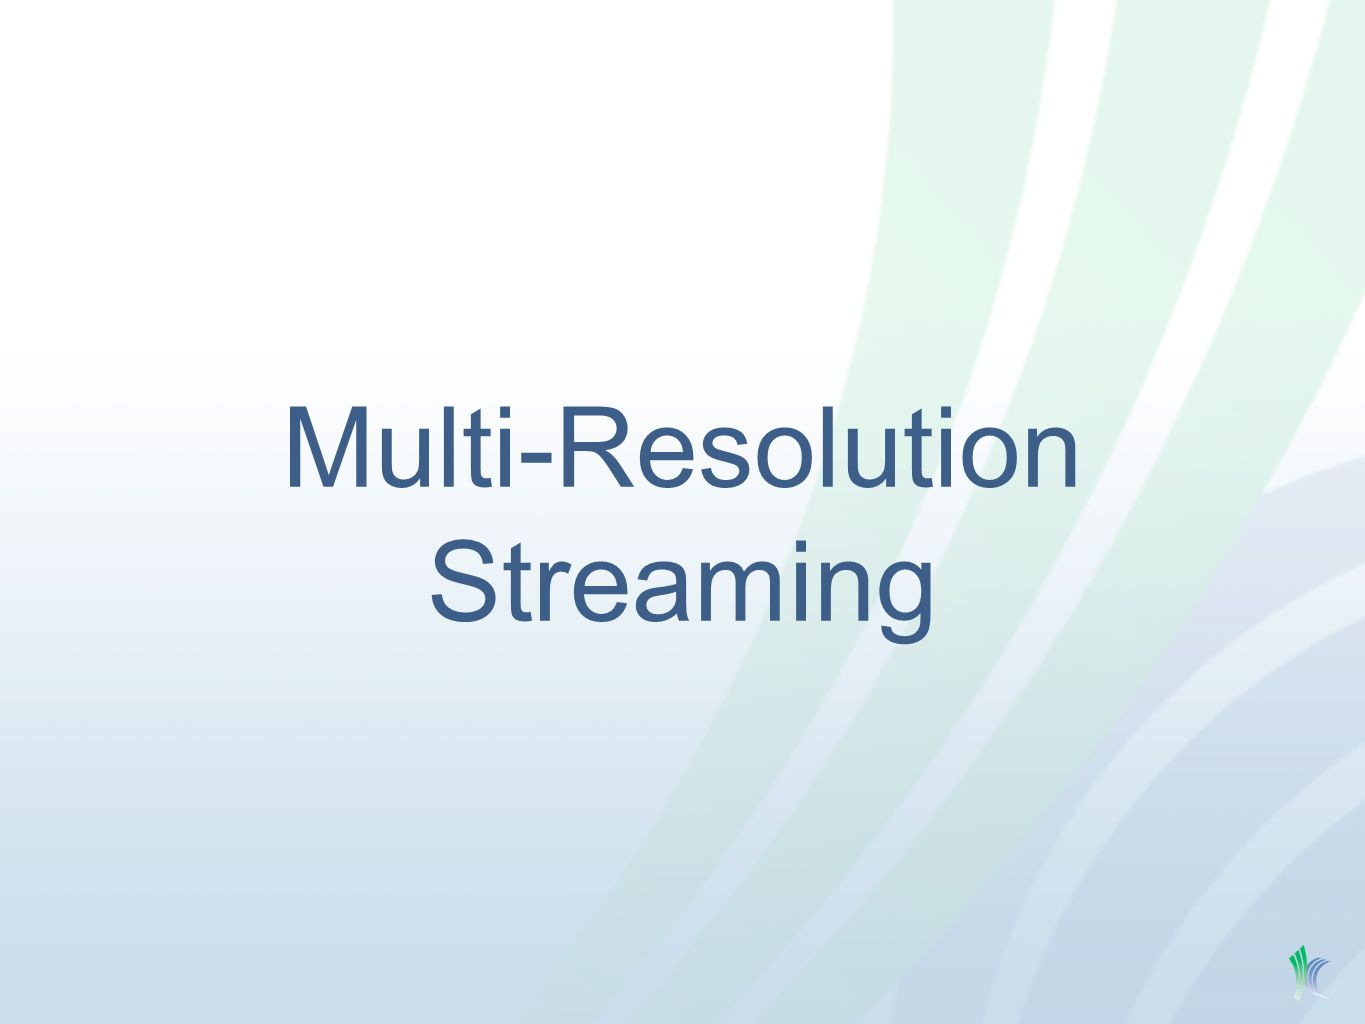 Multi-Resolution Streaming